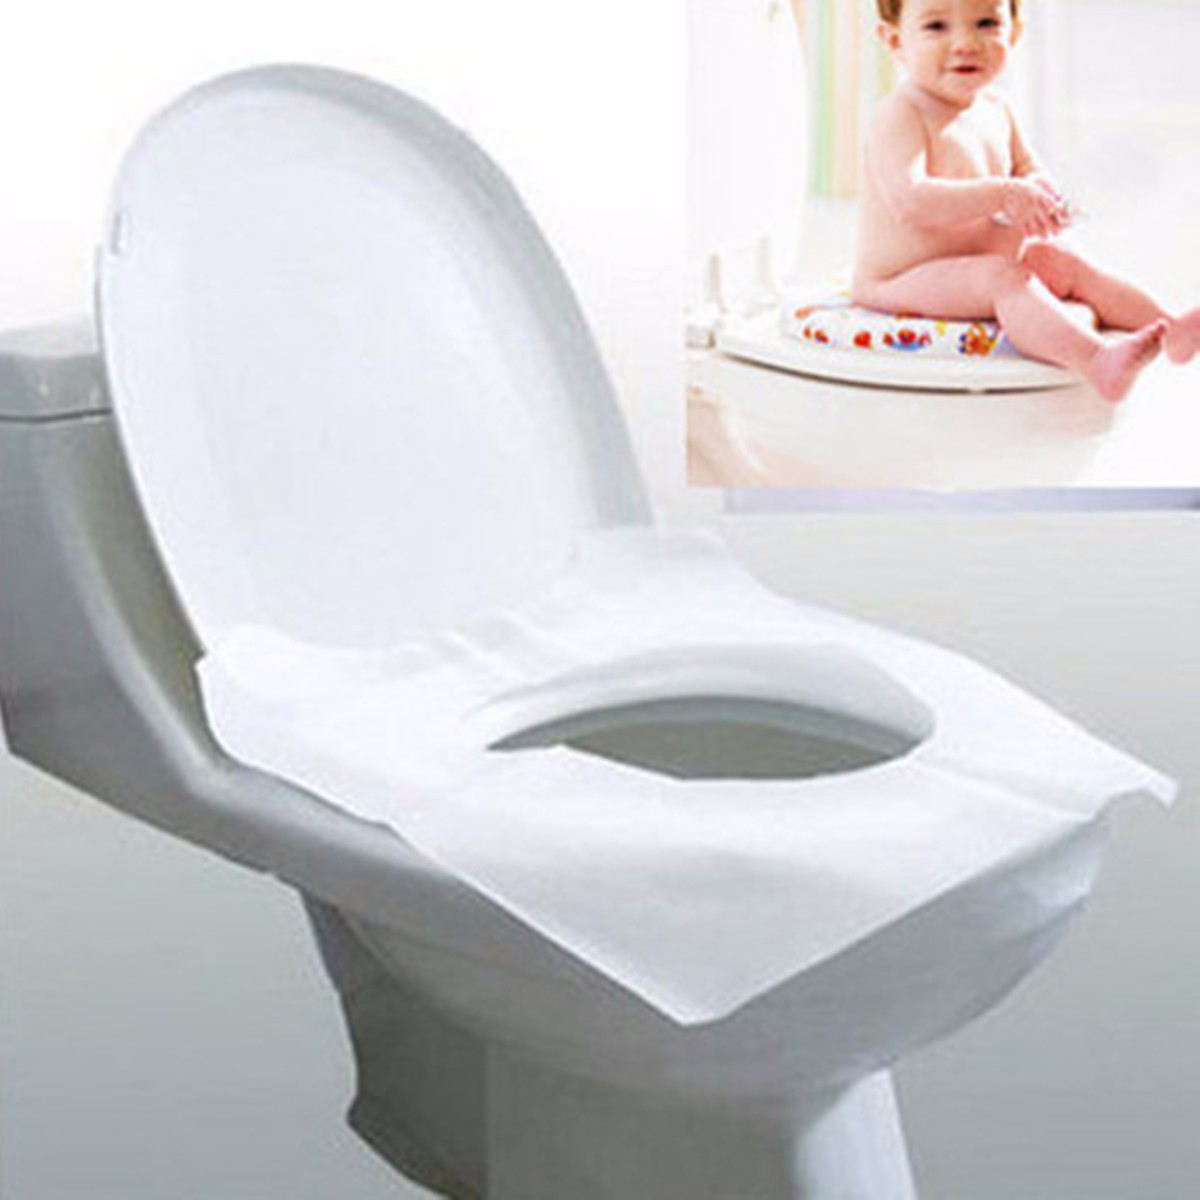 10pcs disposable toilet seat covers hygienic protection